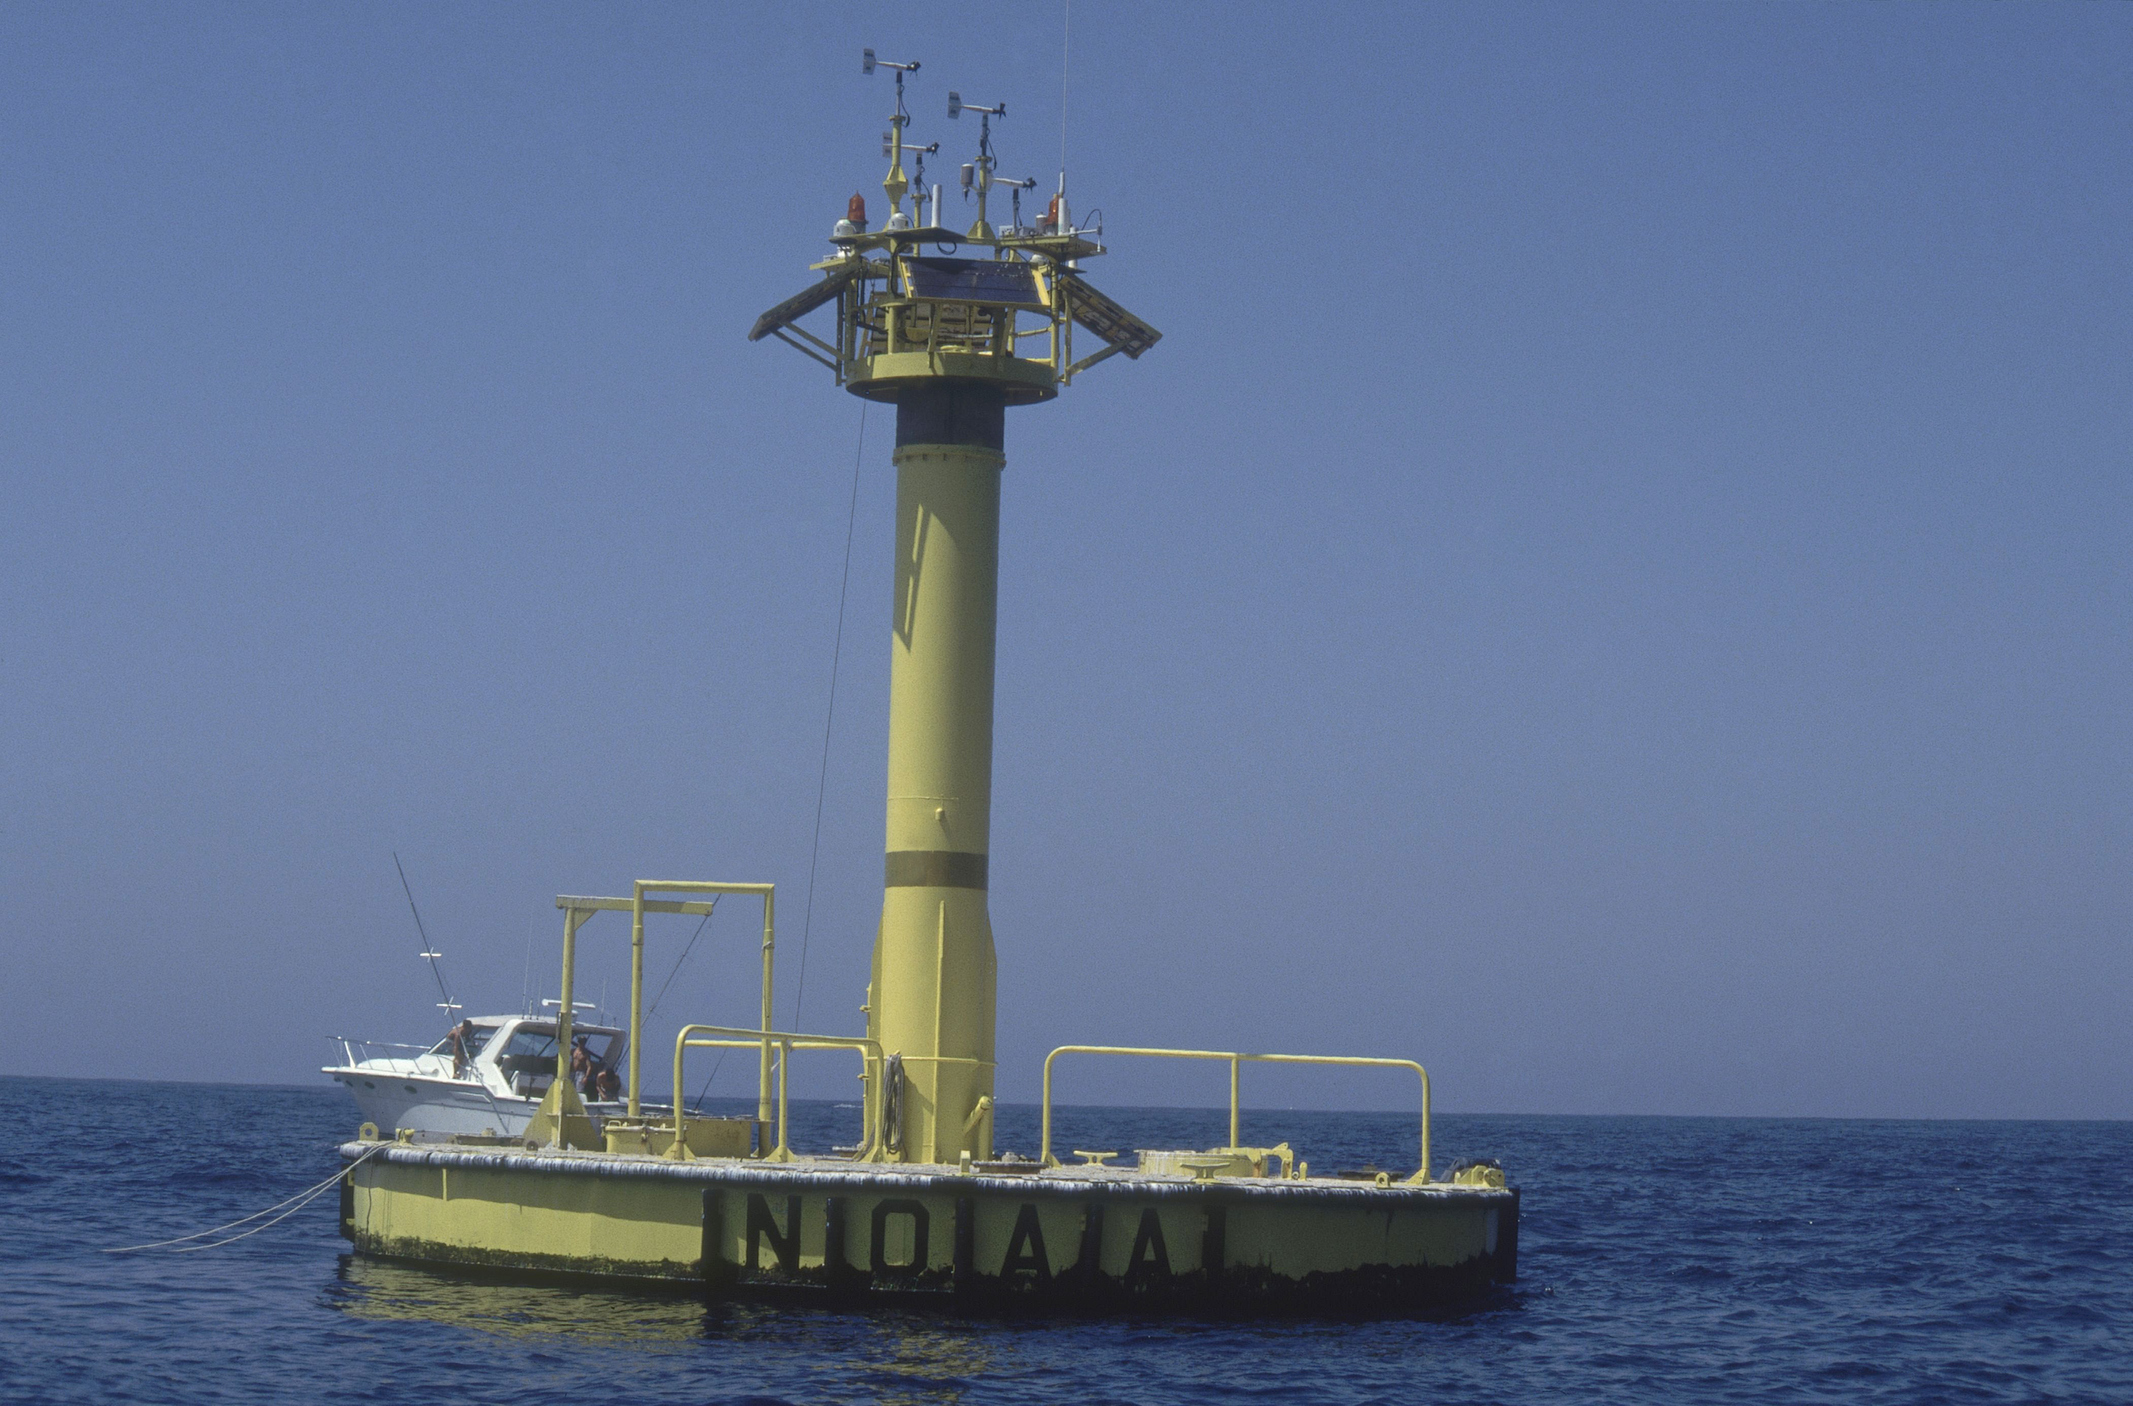 A NOAA buoy floats 30 miles off the coast of California near San Diego. NOAA maintains a network of buoys, tidal stations and satellite measurements that provide a continuous picture of the state of the ocean and Great Lakes.